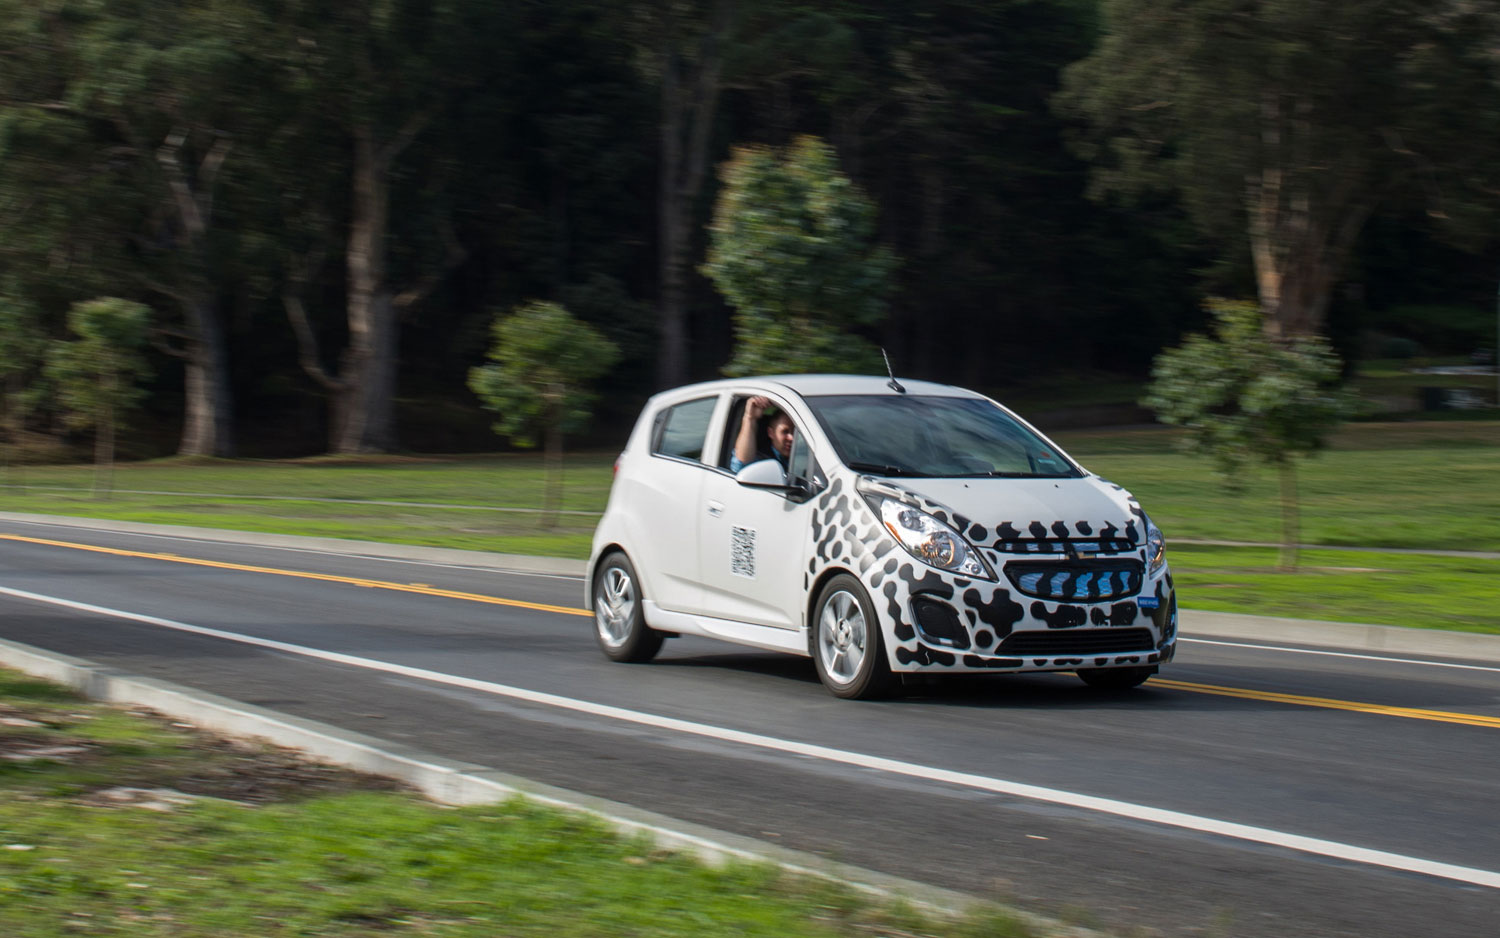 Chevy Spark Electric Vehicle Prototype Autoblog